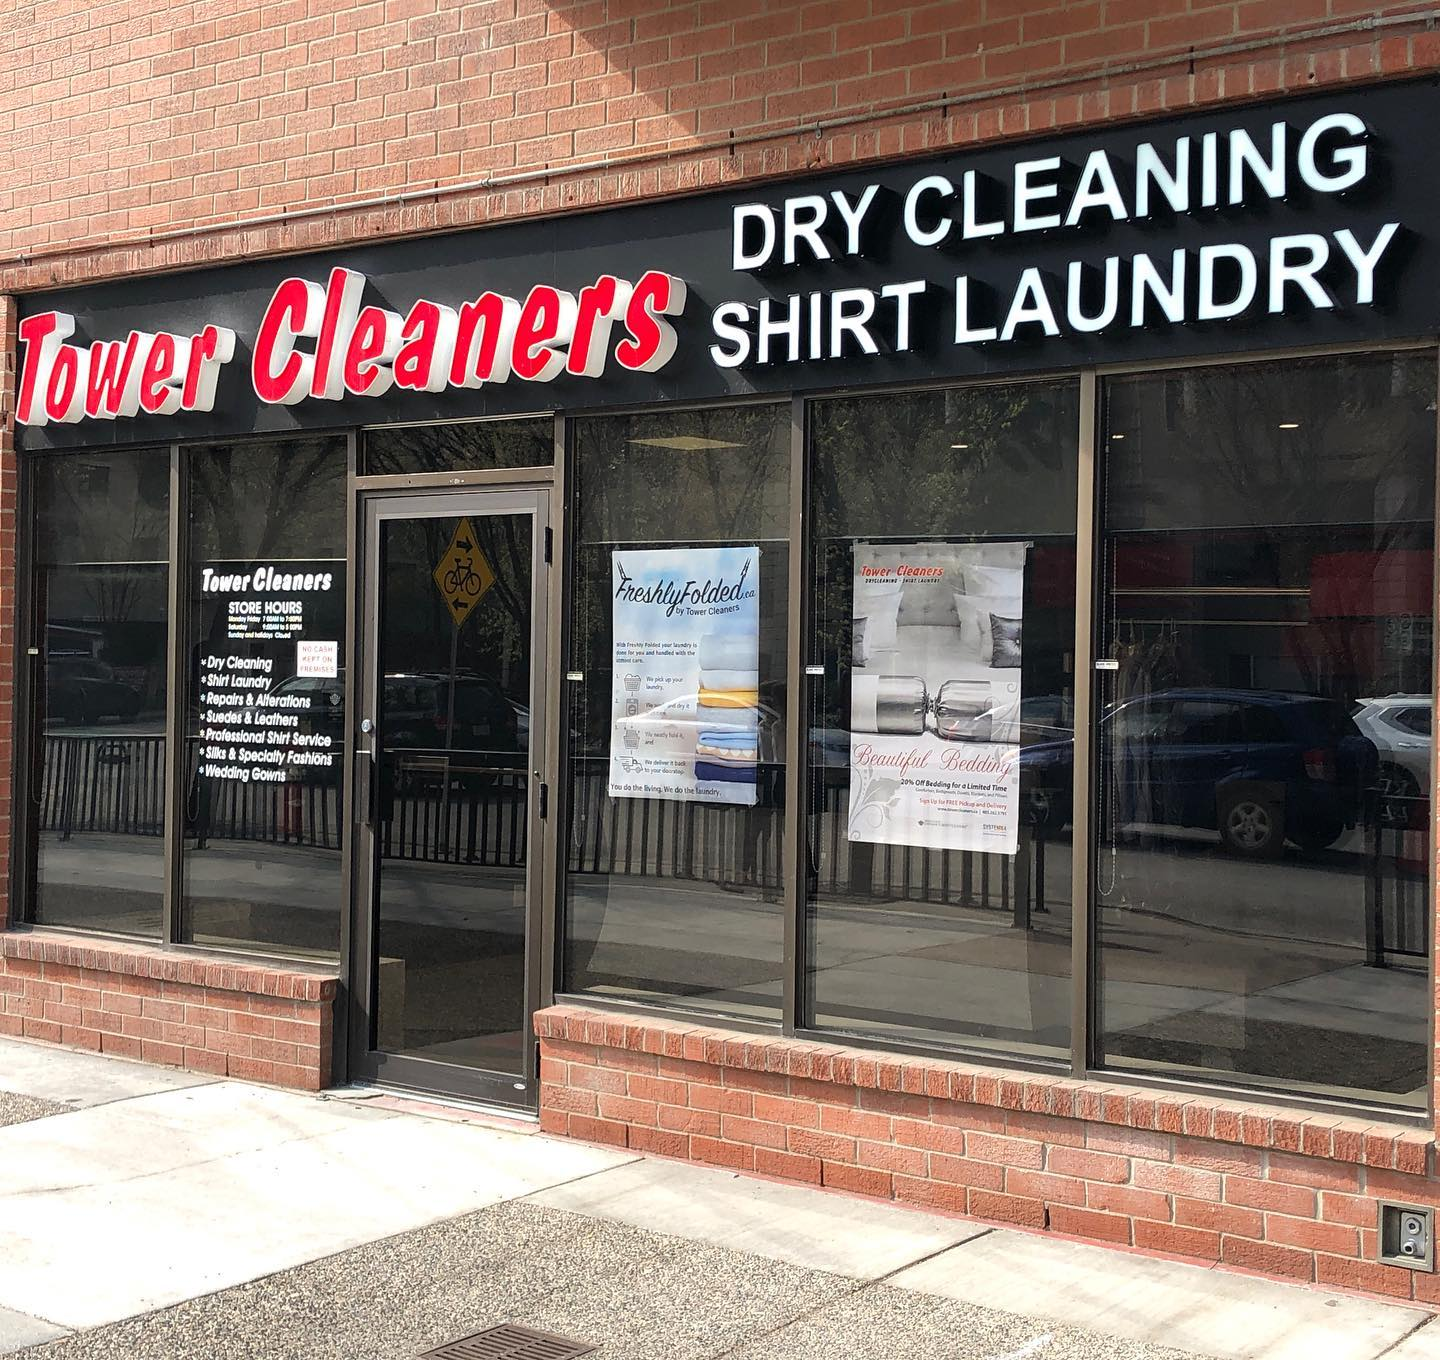 Eau Claire Tower Cleaners store. #119, 738 - 3 Ave SW, Calgary, Alberta, (403) 262-0781